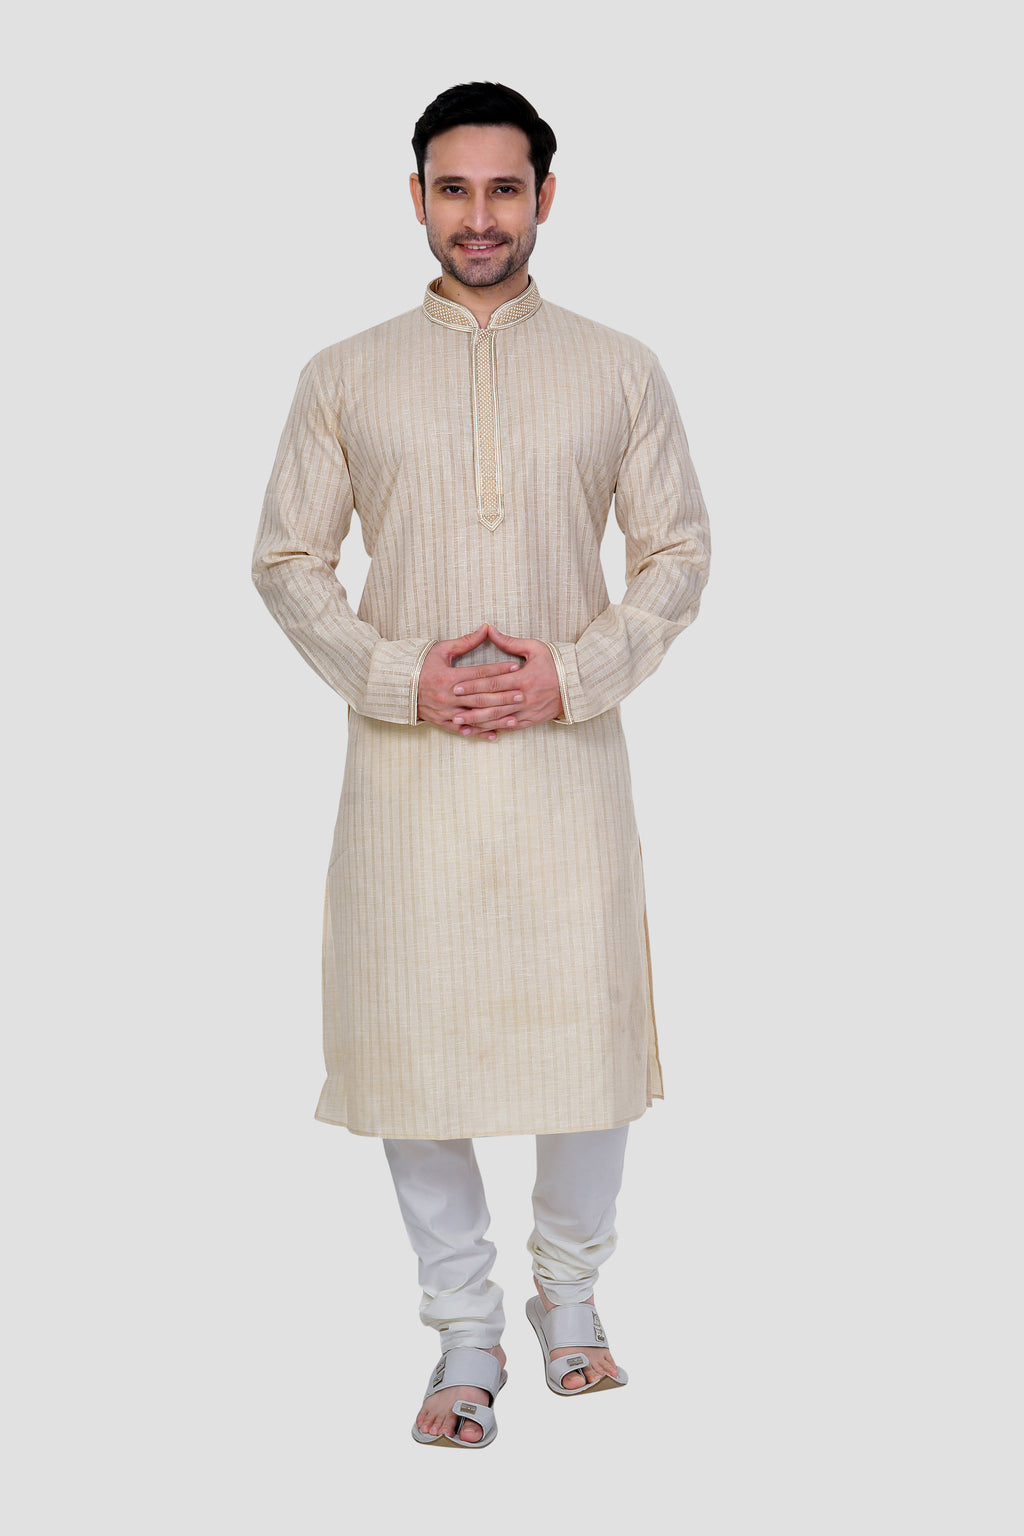 Ethniz-Men's Beige Kurta with Churidar